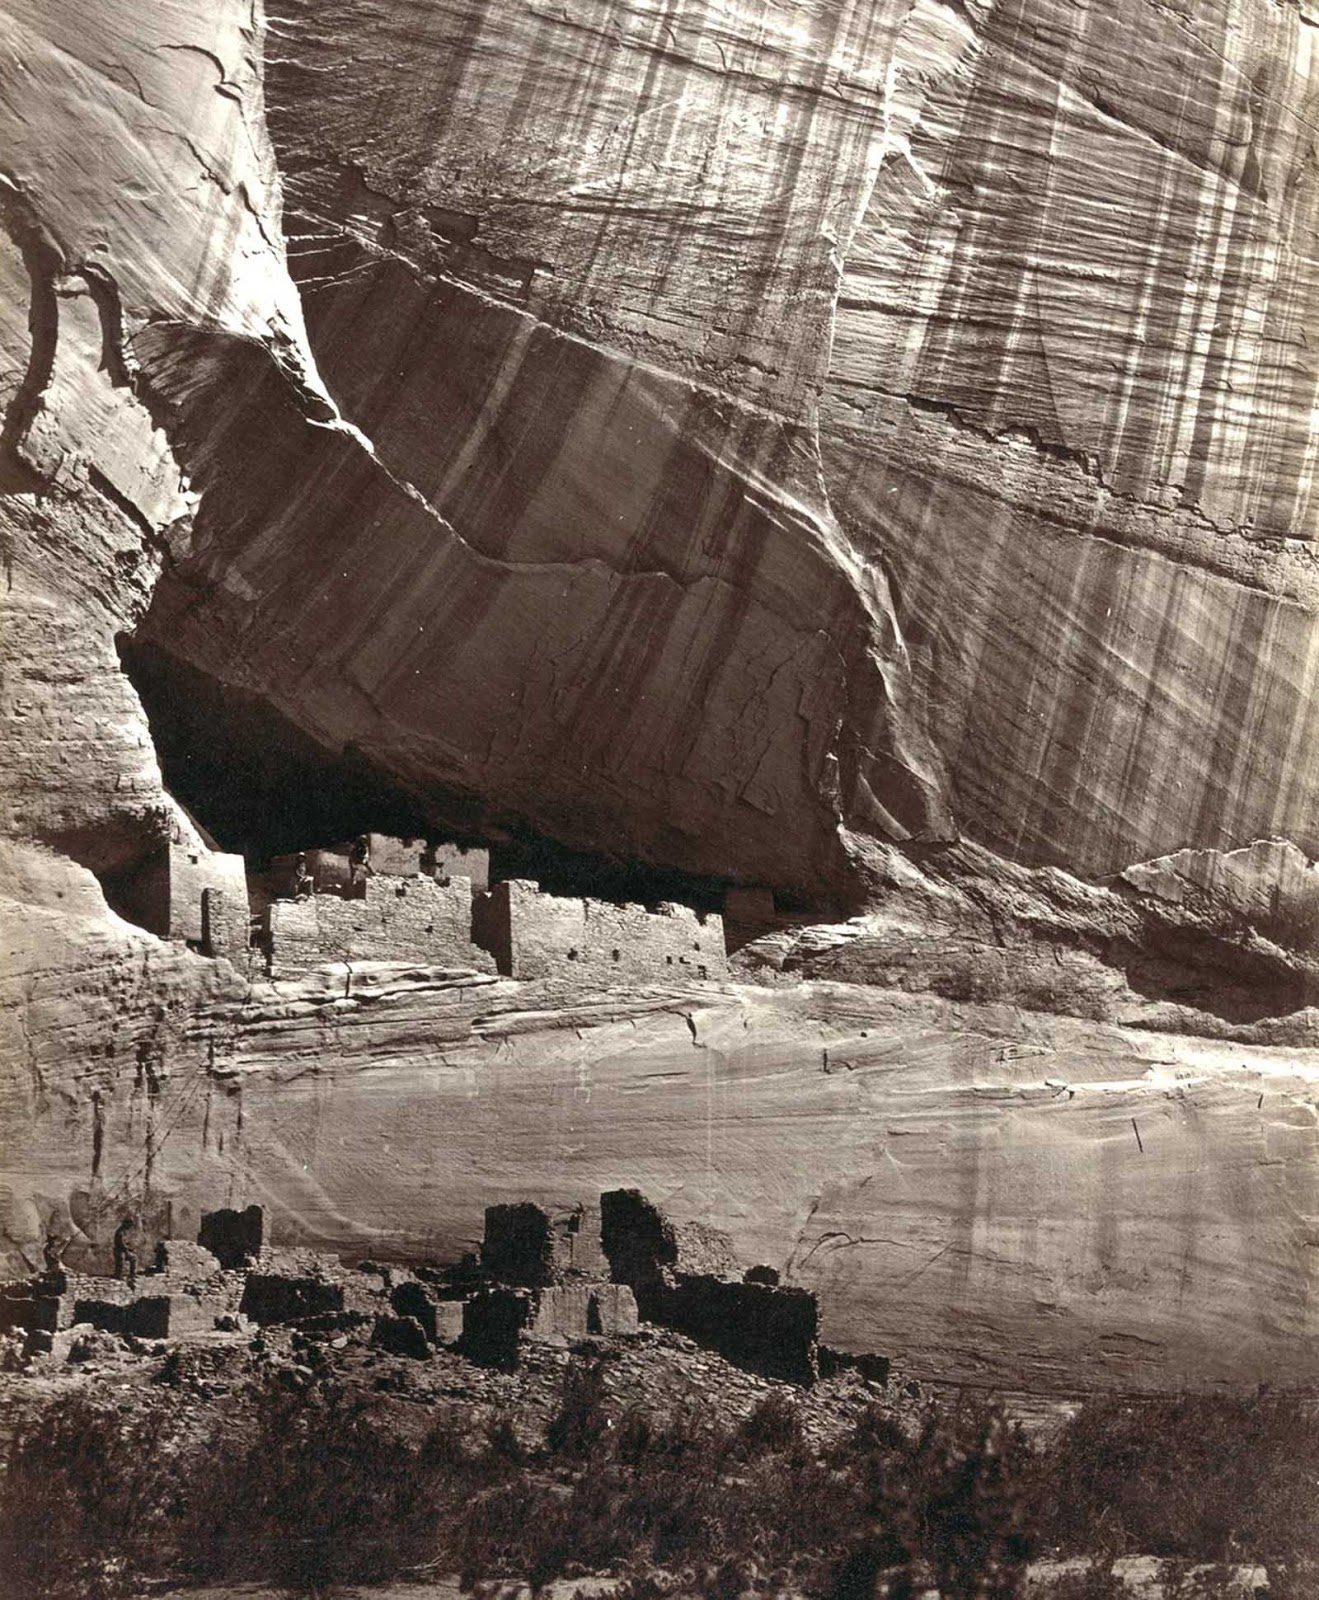 View of the White House, Ancestral Pueblo Native American (Anasazi) ruins in Canyon de Chelly, Arizona, in 1873. The cliff dwellings were built by the Anasazi more than 500 years earlier. At bottom, men stand and pose on cliff dwellings in a niche and on ruins on the canyon floor. Climbing ropes connect the groups of men.